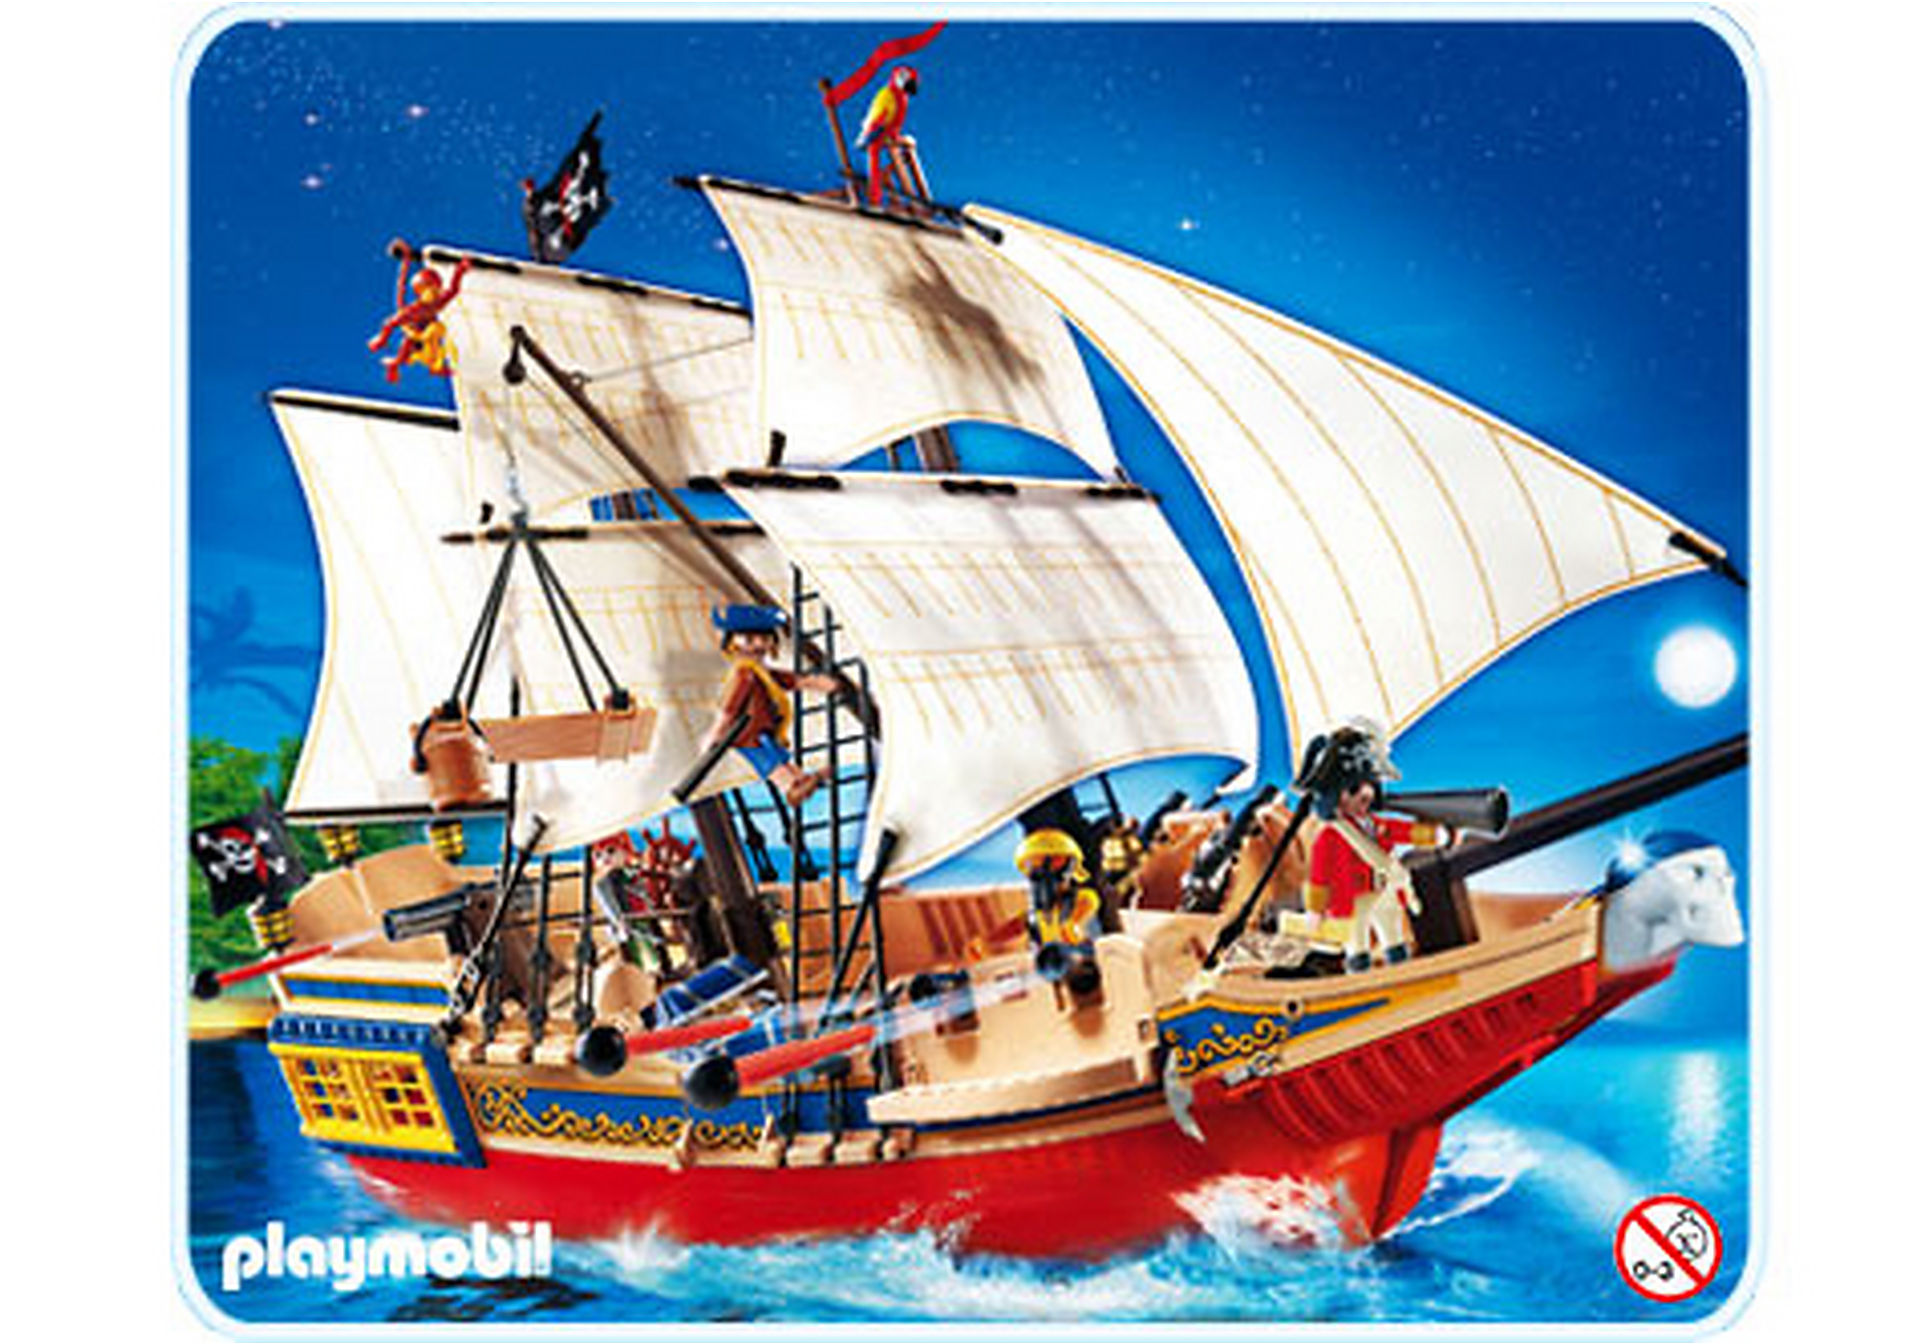 4290-A Grand bateau camouflage des pirates zoom image1